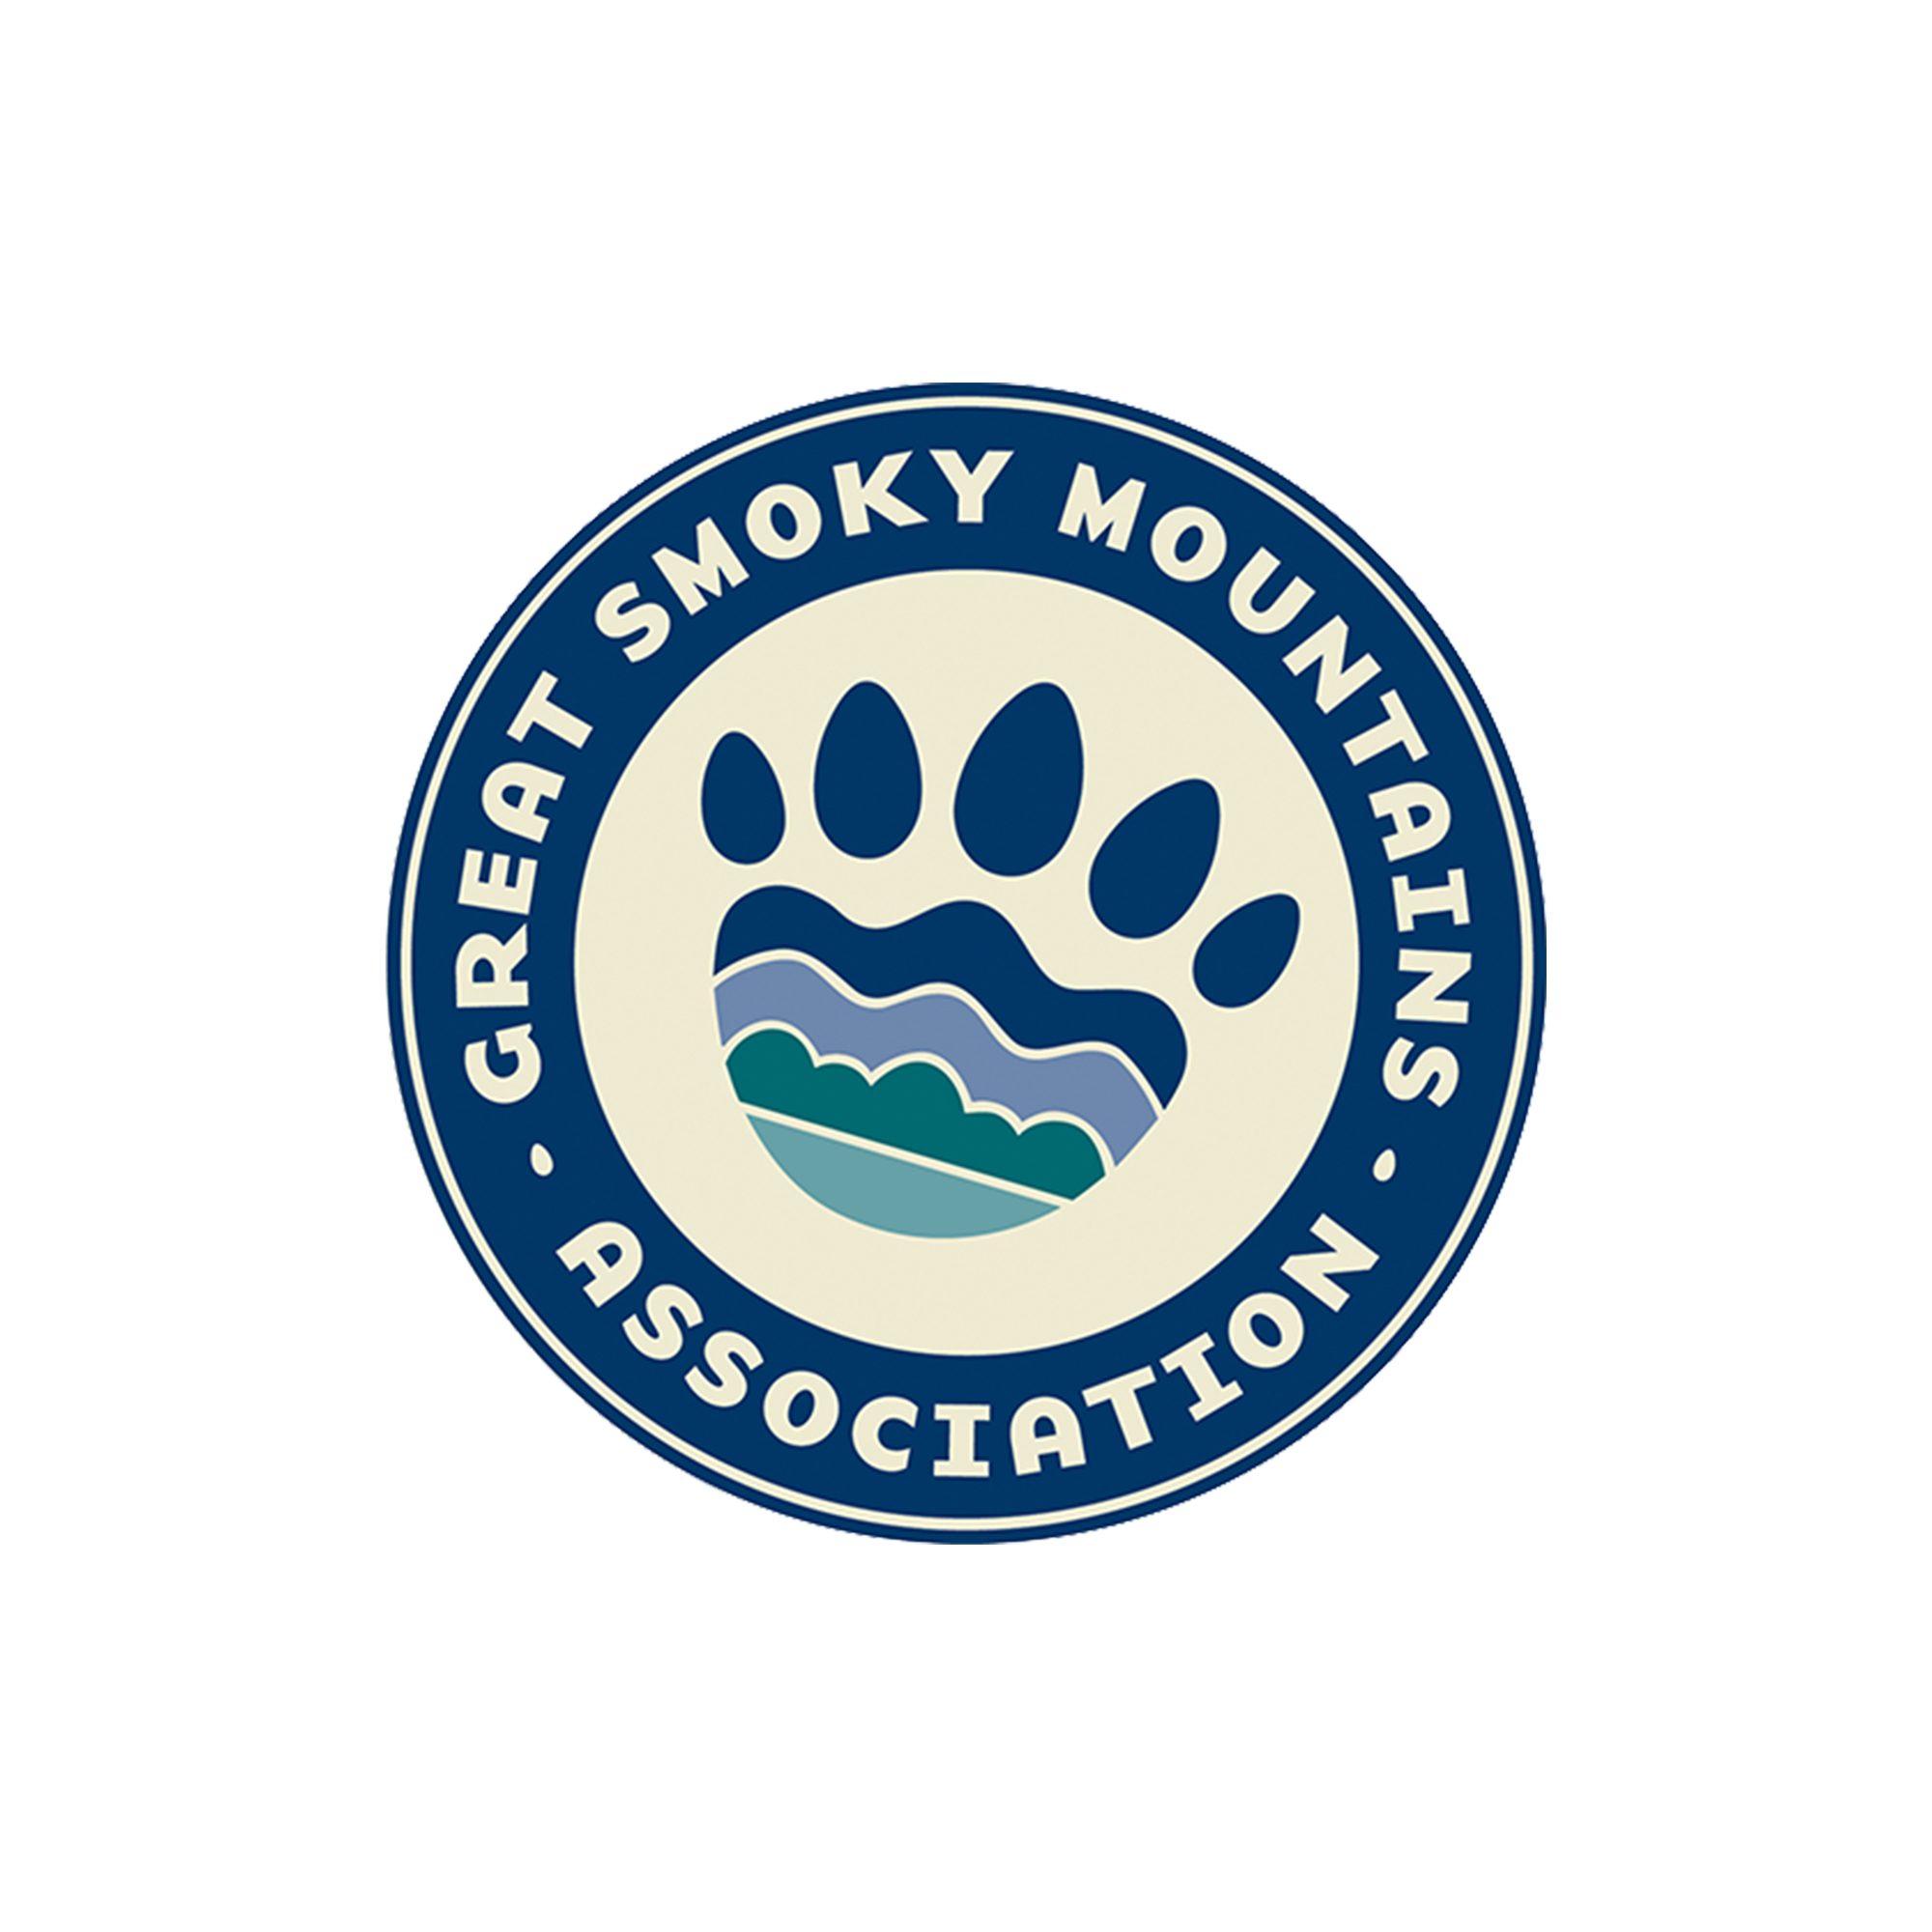 Mountains Spirits - A Chronicle of Corn Whiskey